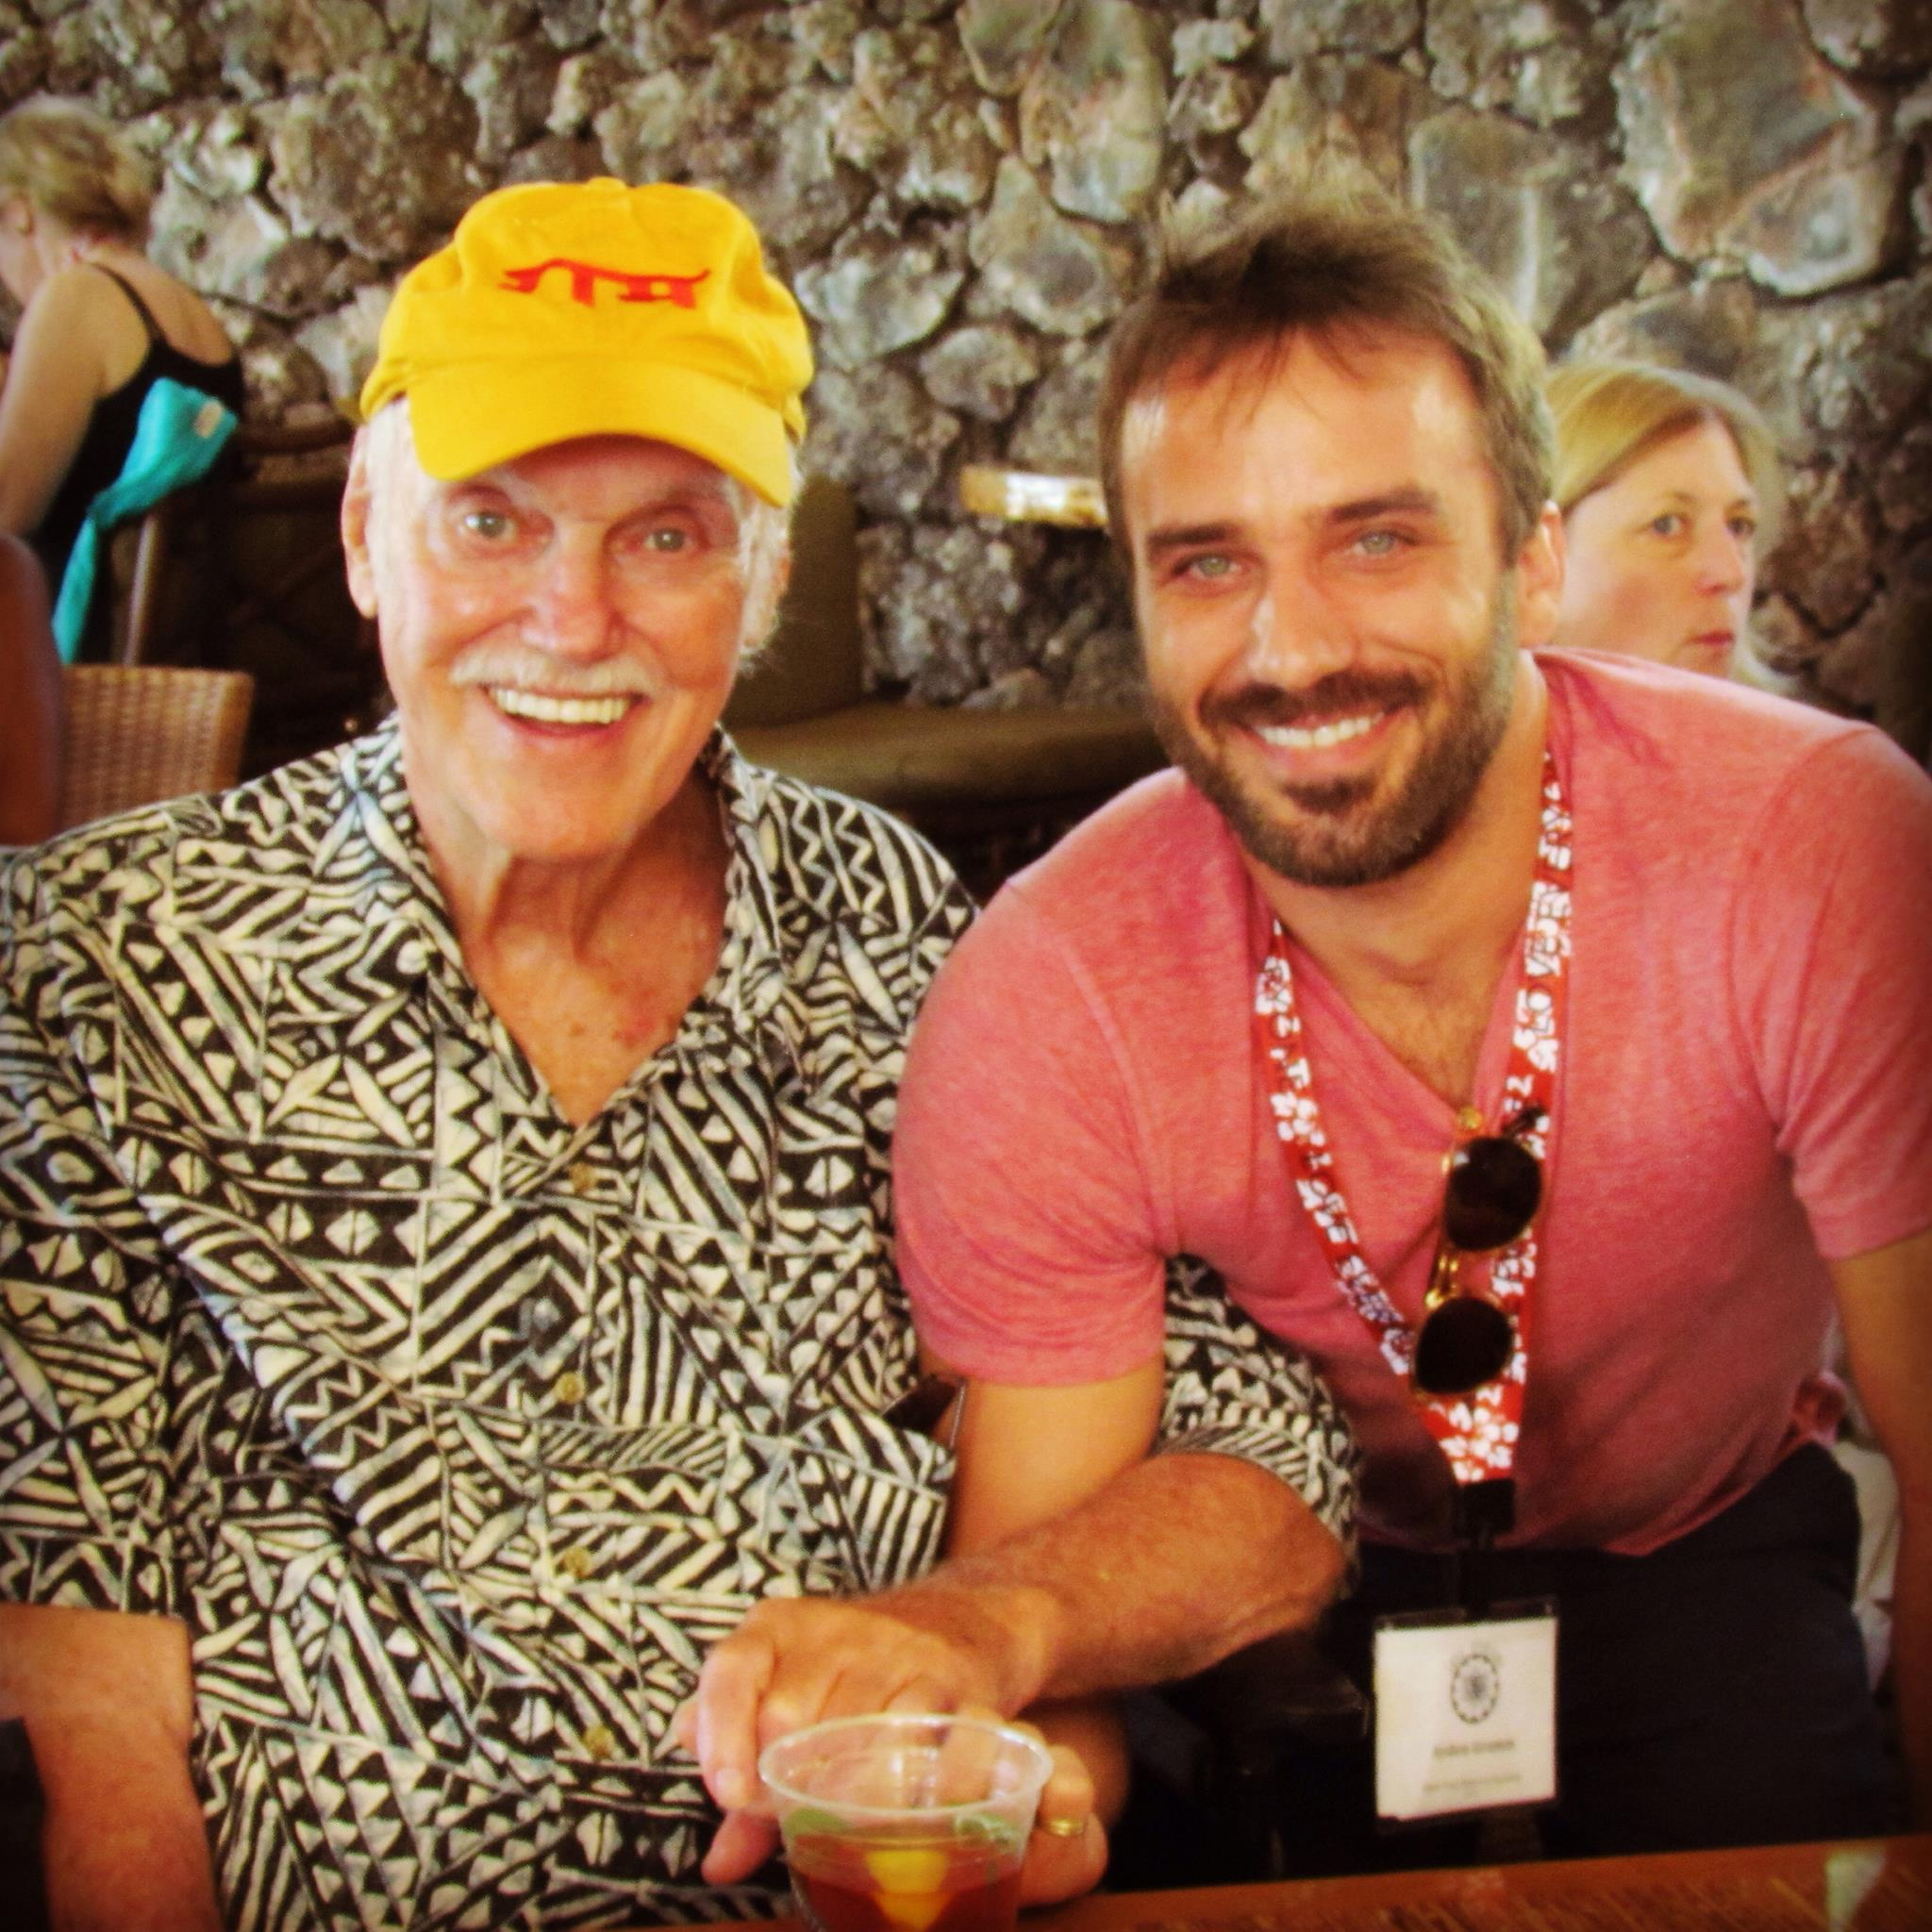 Ram Dass and I at the retreat